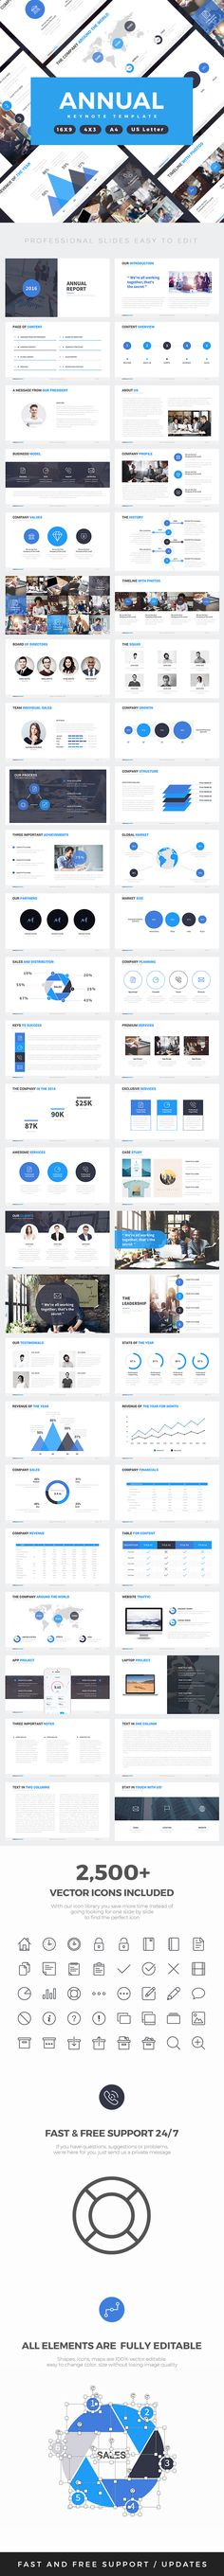 Annual Report Keynote Template — Keynote KEY #keynote template #annual report • Download ➝ https://graphicriver.net/item/annual-report-keynote-template/19402011?ref=pxcr